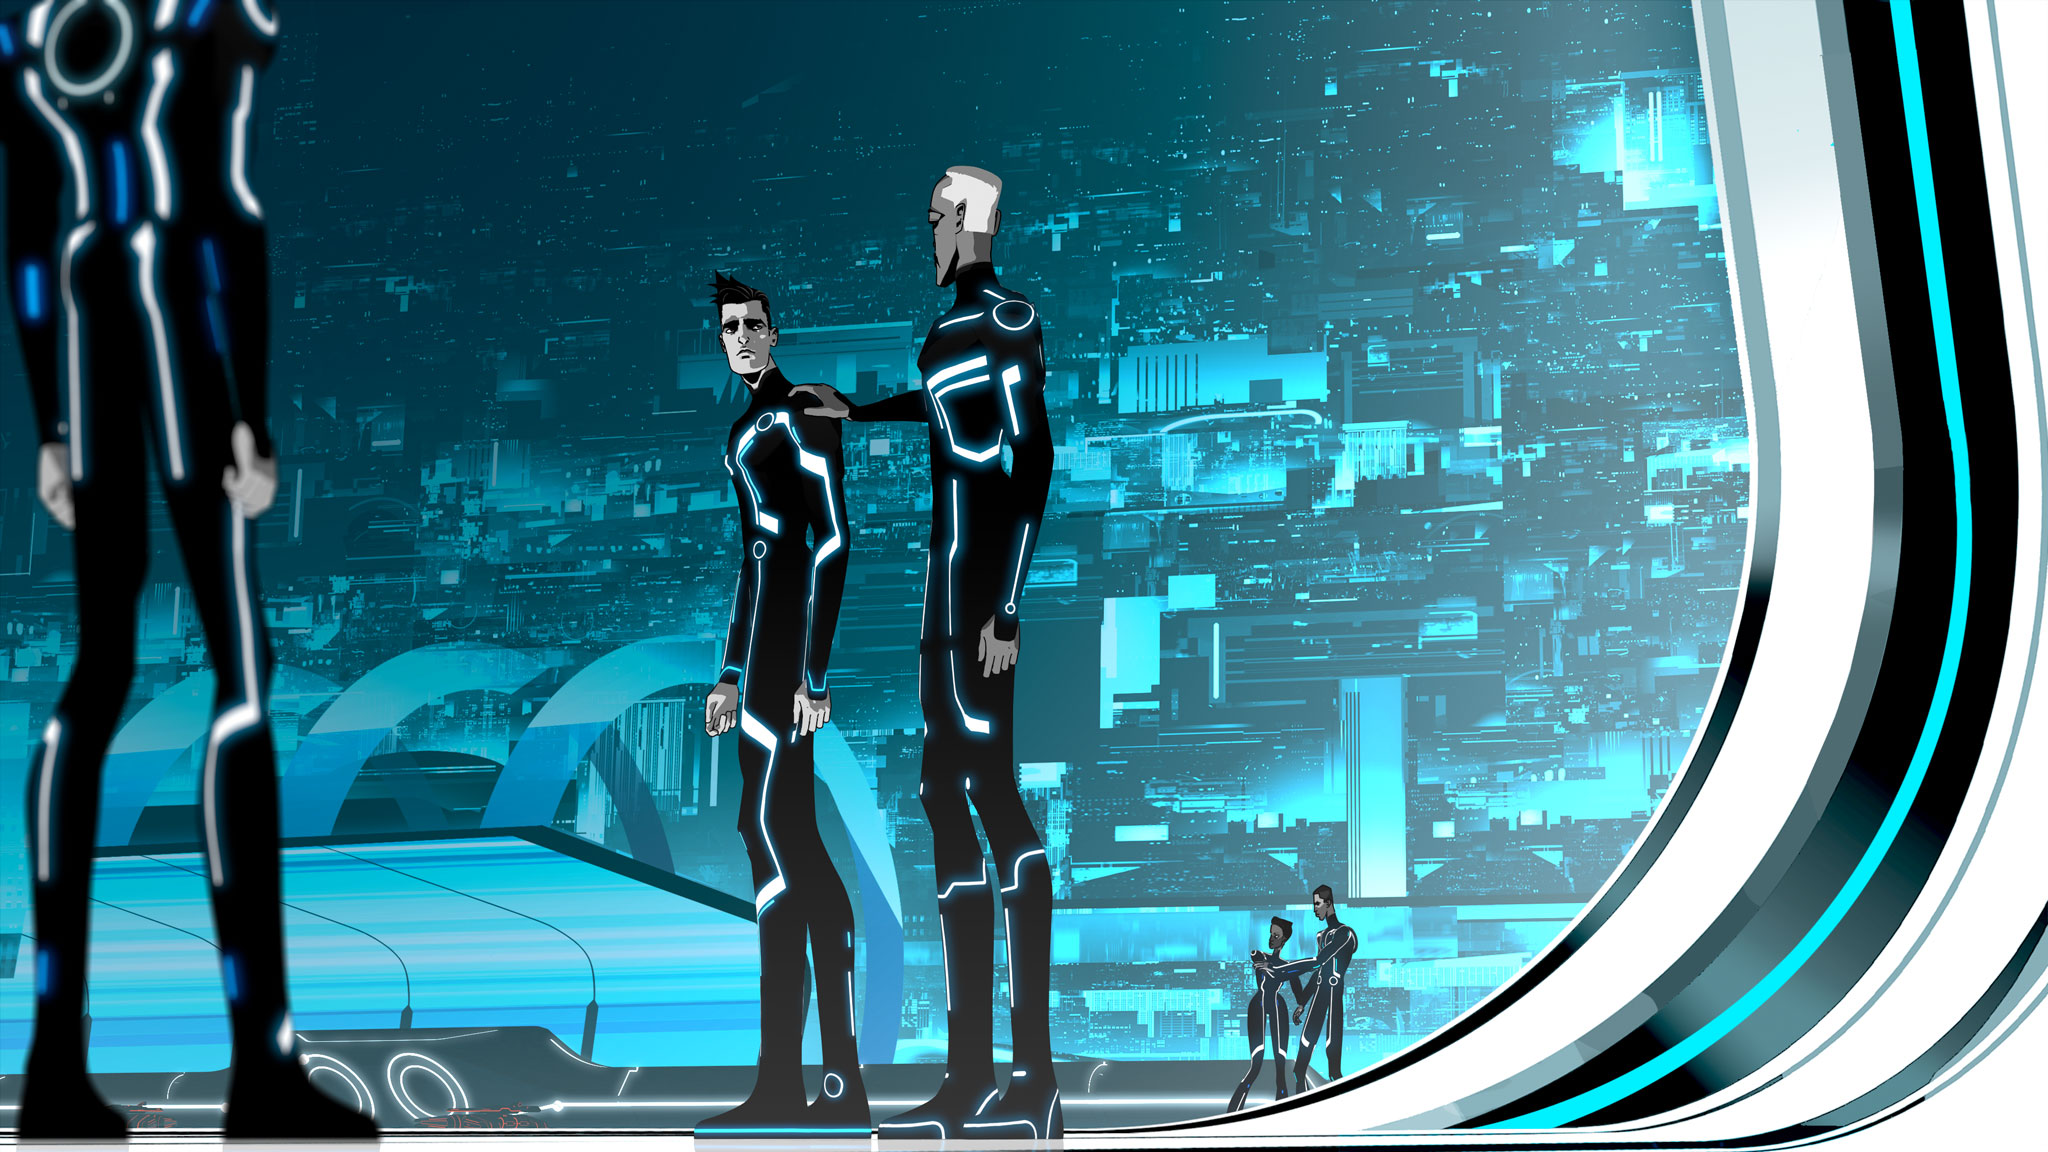 Dual Monitor Animated Wallpaper Tron Uprising Backgrounds Pictures Images